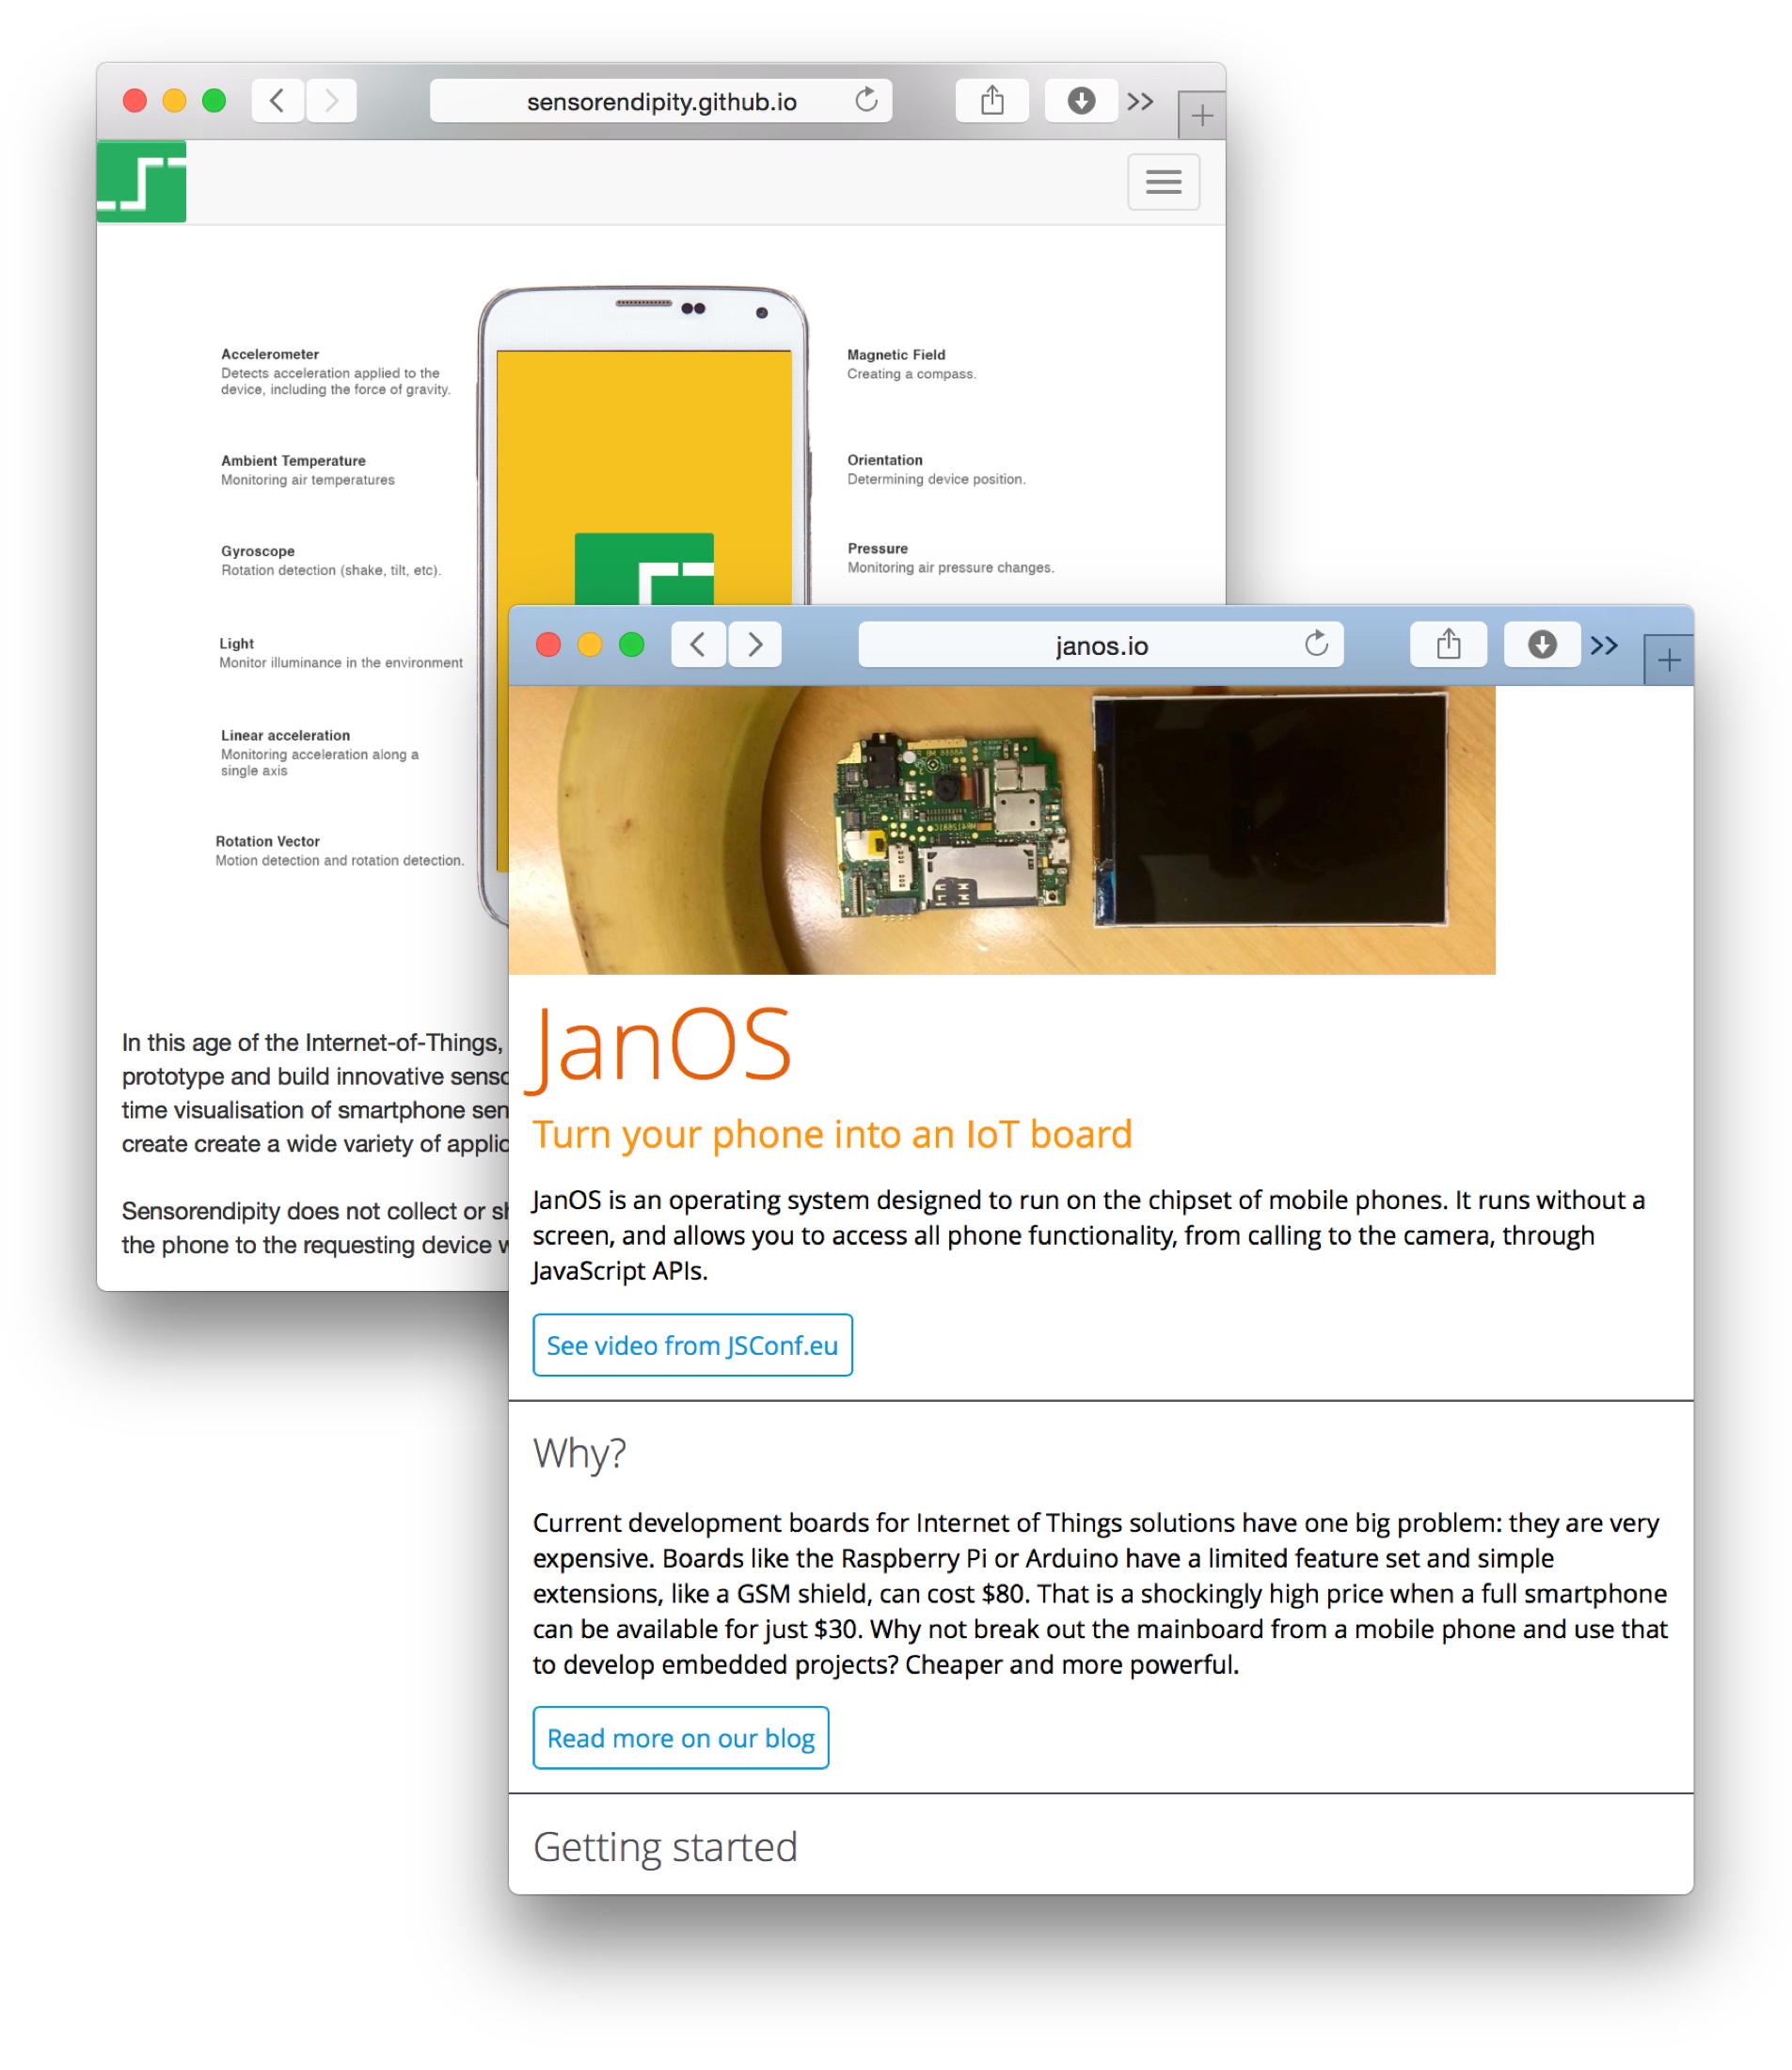 Sensorenditpity in Android and JanOS in FirefoxOS to access sensor values in phones with